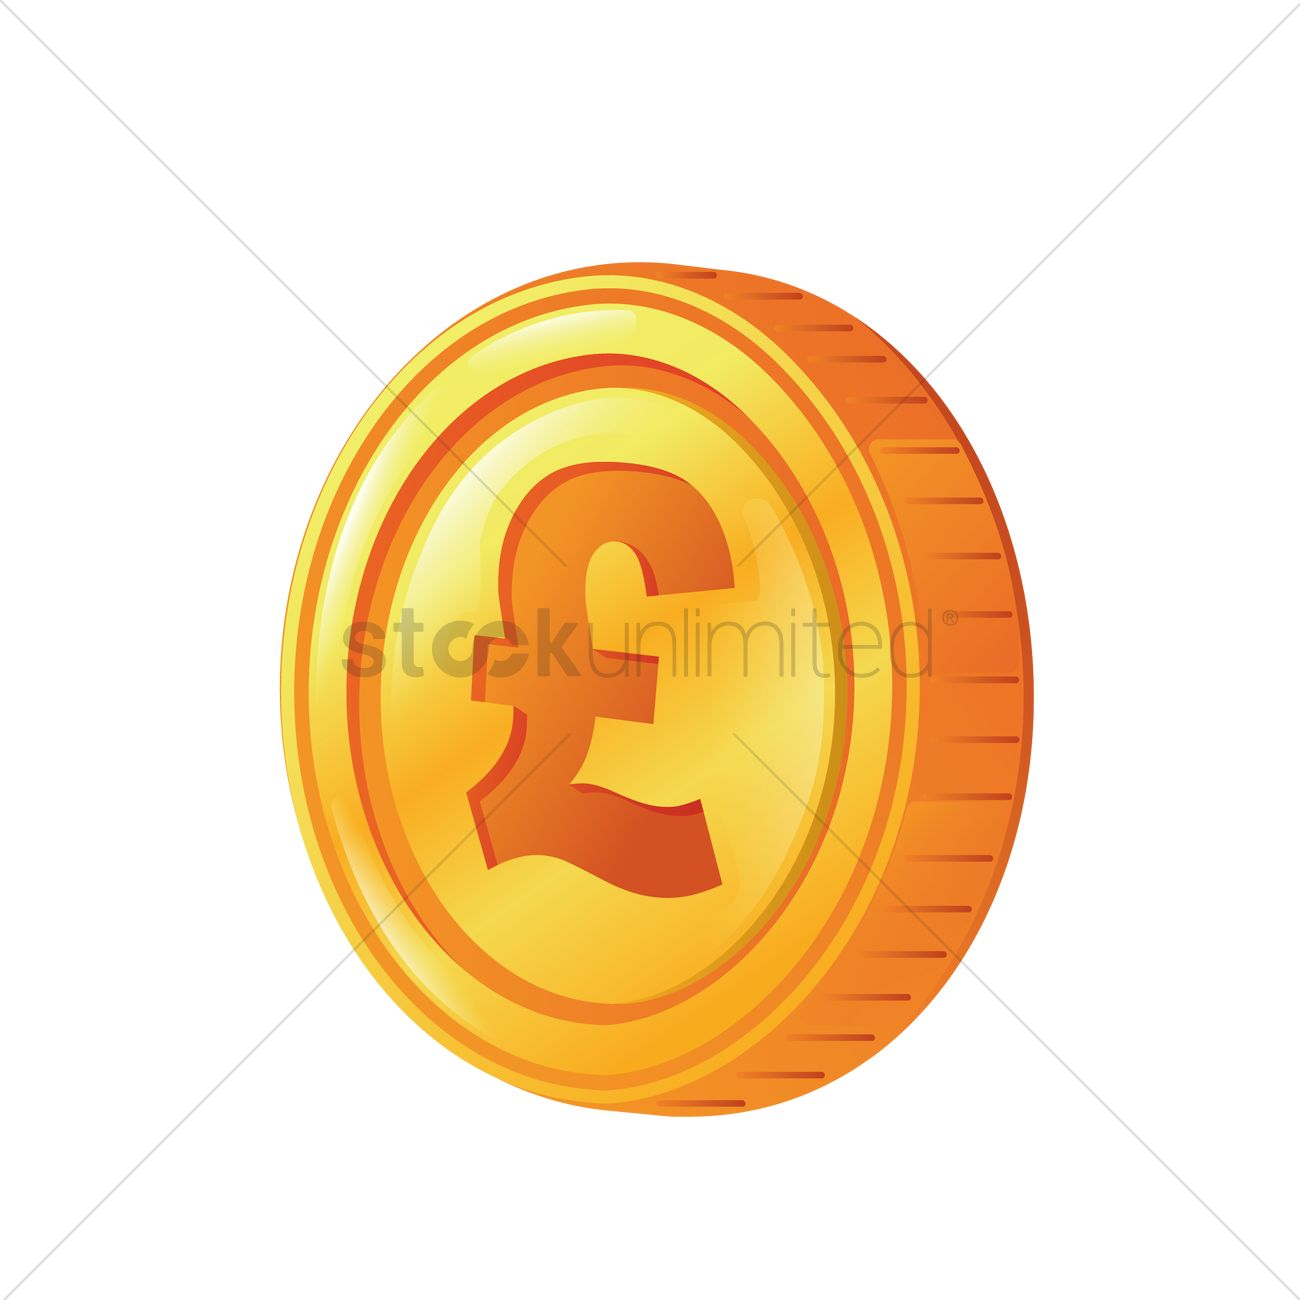 Uk Pound Currency On A Coin Vector Image 1989404 Stockunlimited